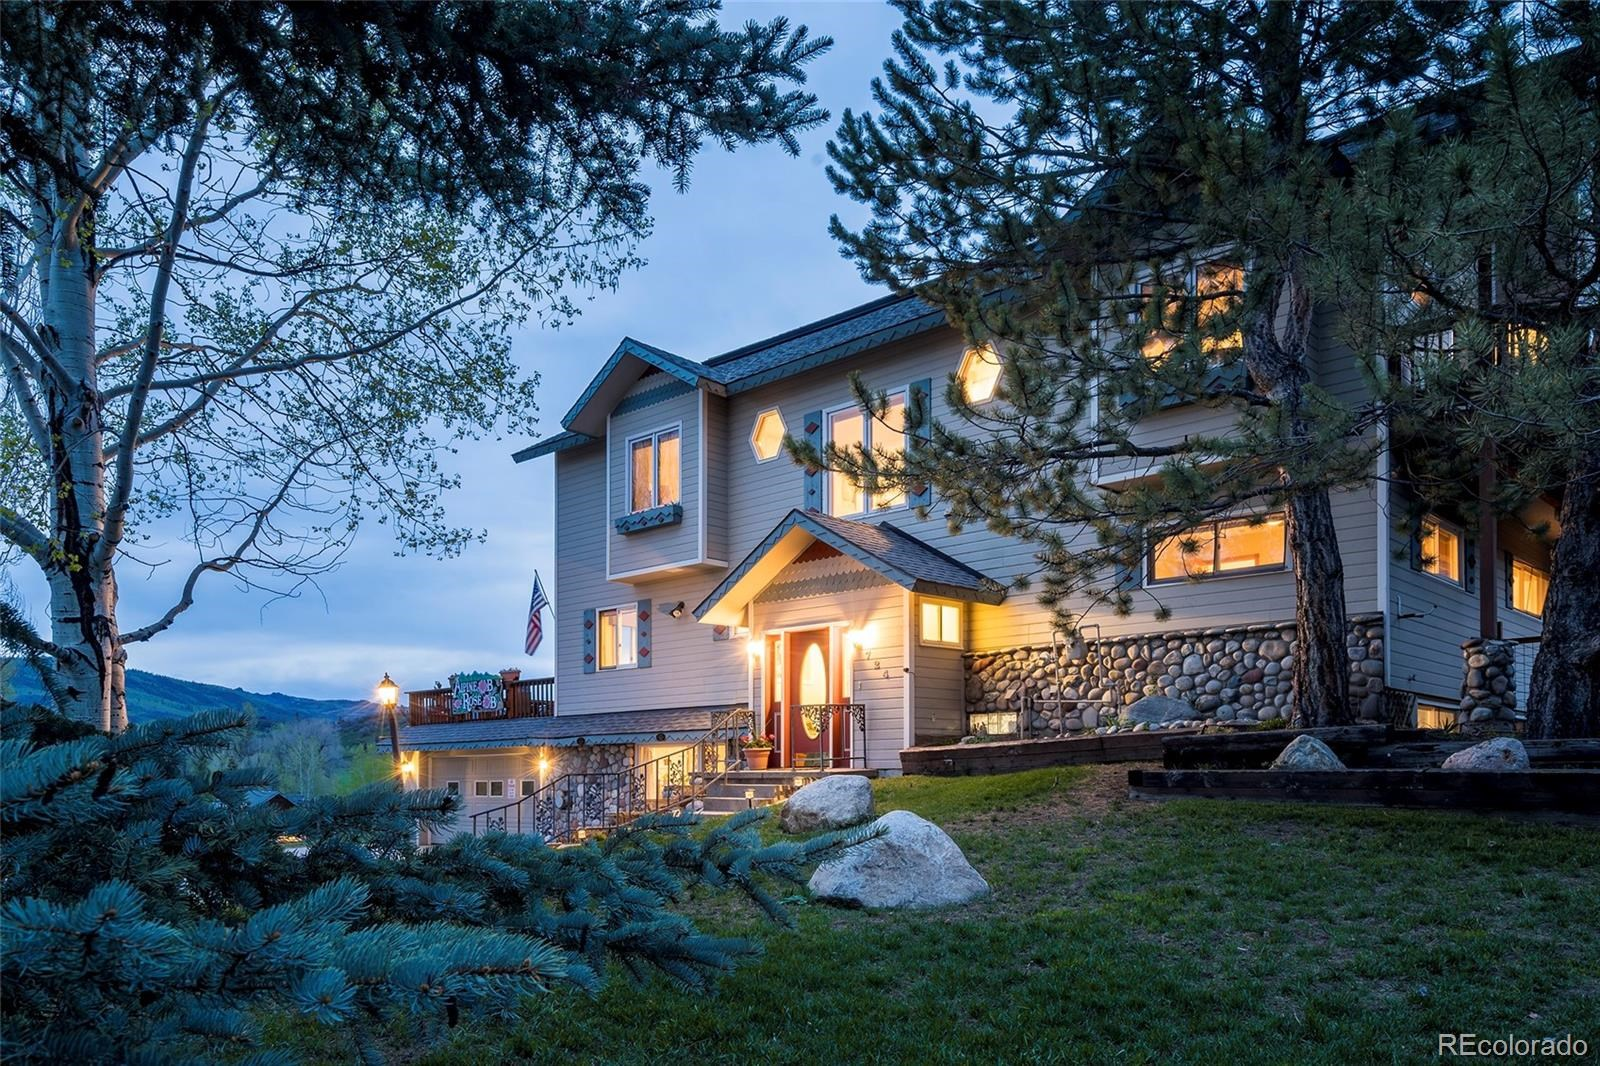 MLS# 7463654 - 1 - 724 N Grand Street, Steamboat Springs, CO 80487